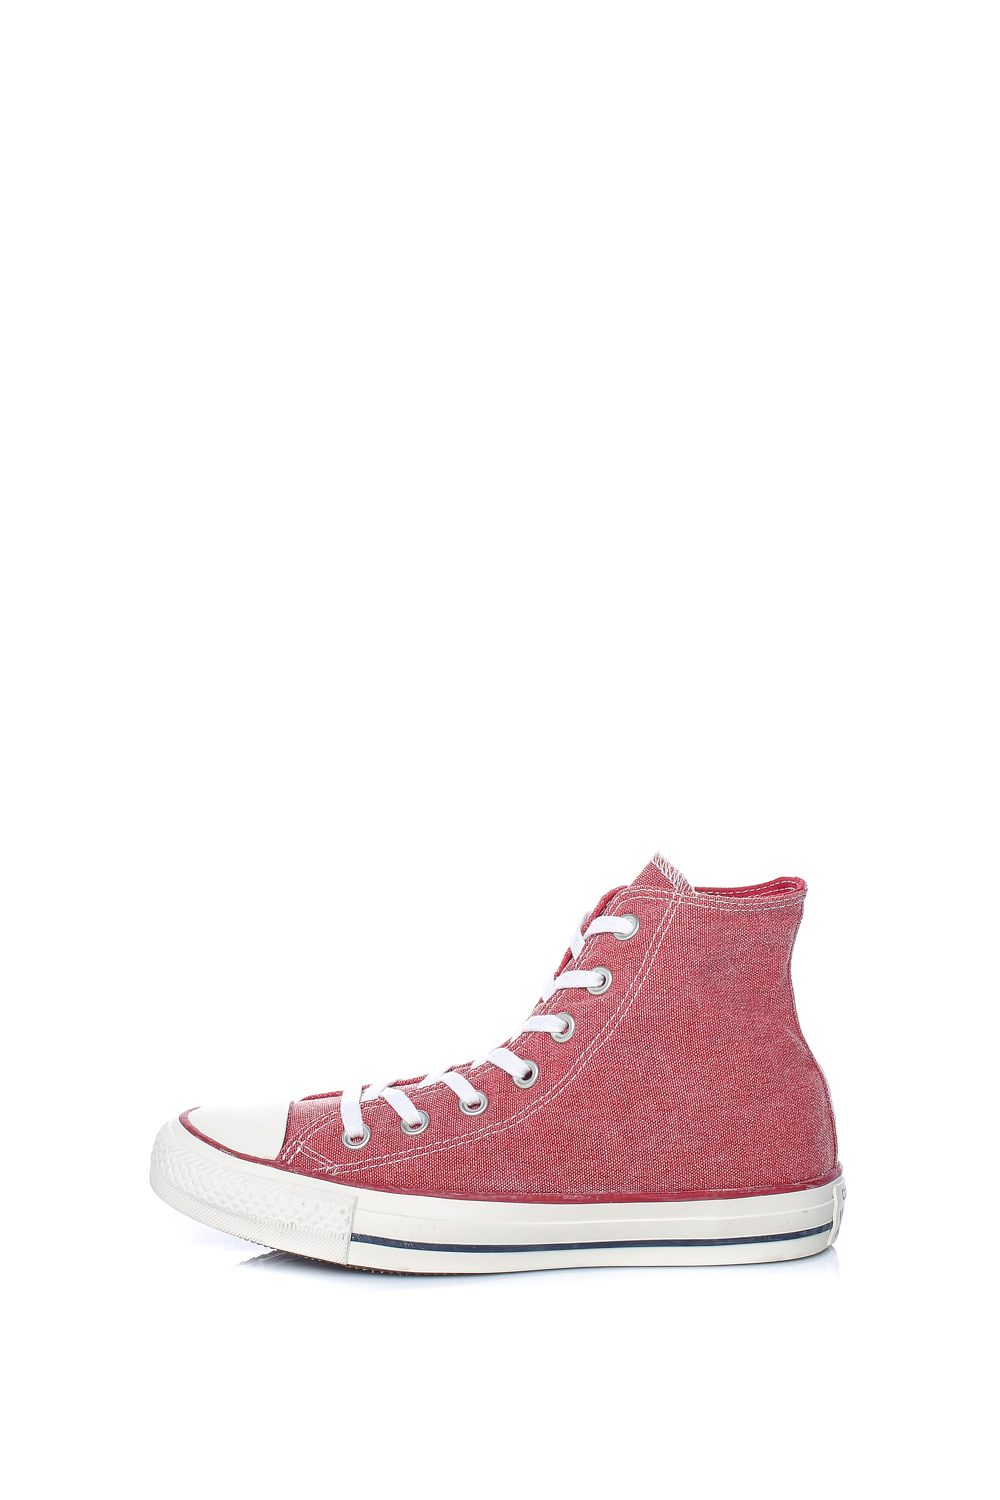 CTAS STONE WASH HI RED